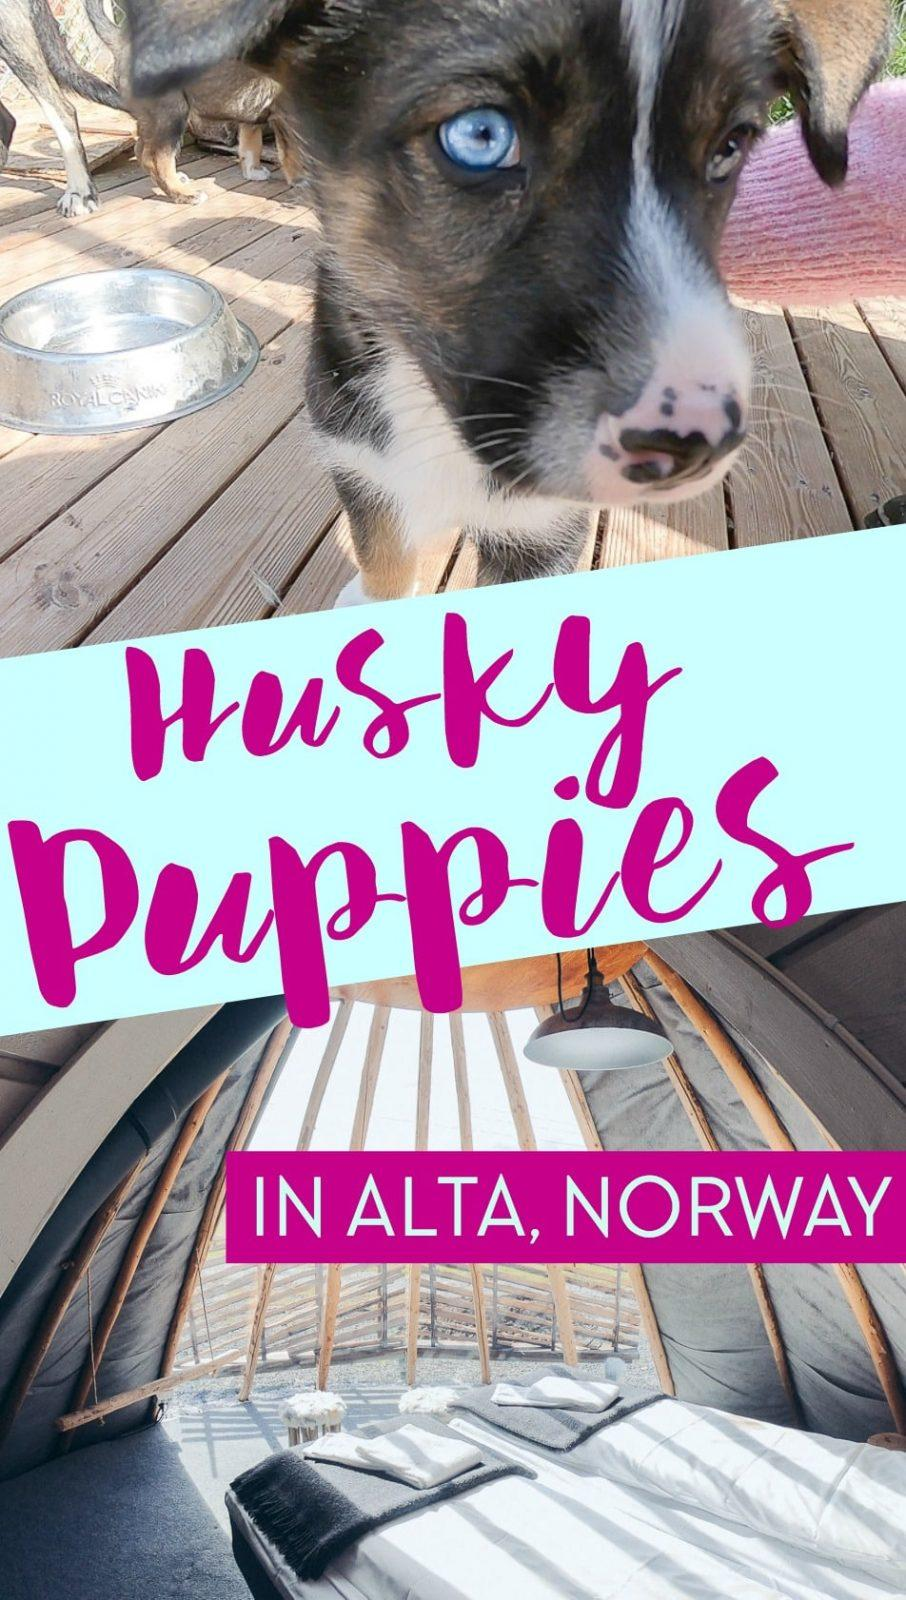 If you stay at Holmen Husky Lodge in Alta, Northern Norway in the summer you can play with the husky puppies!